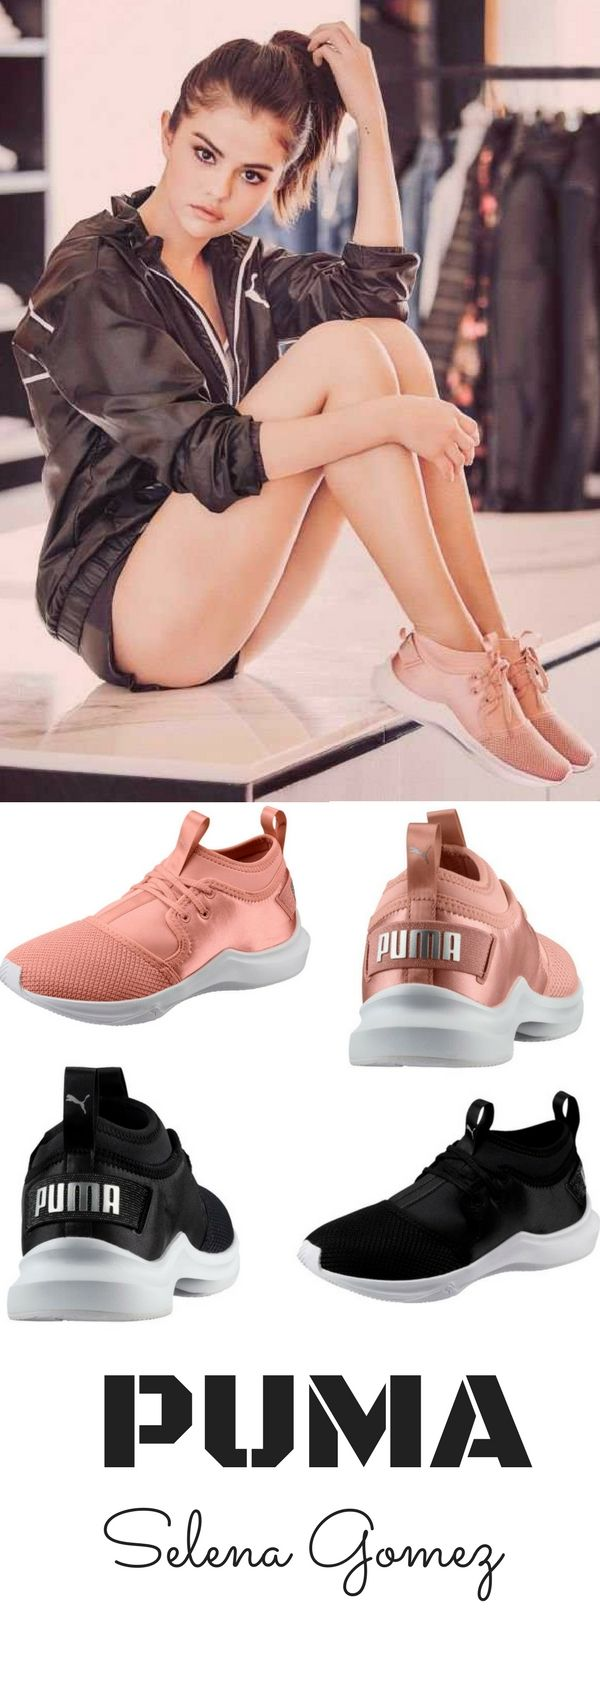 Puma with Selena Gomez  affiliate  puma  selenagomez  shoes  pink  black   trainers  sneakers  love  trending  viral d0fe9cb2a